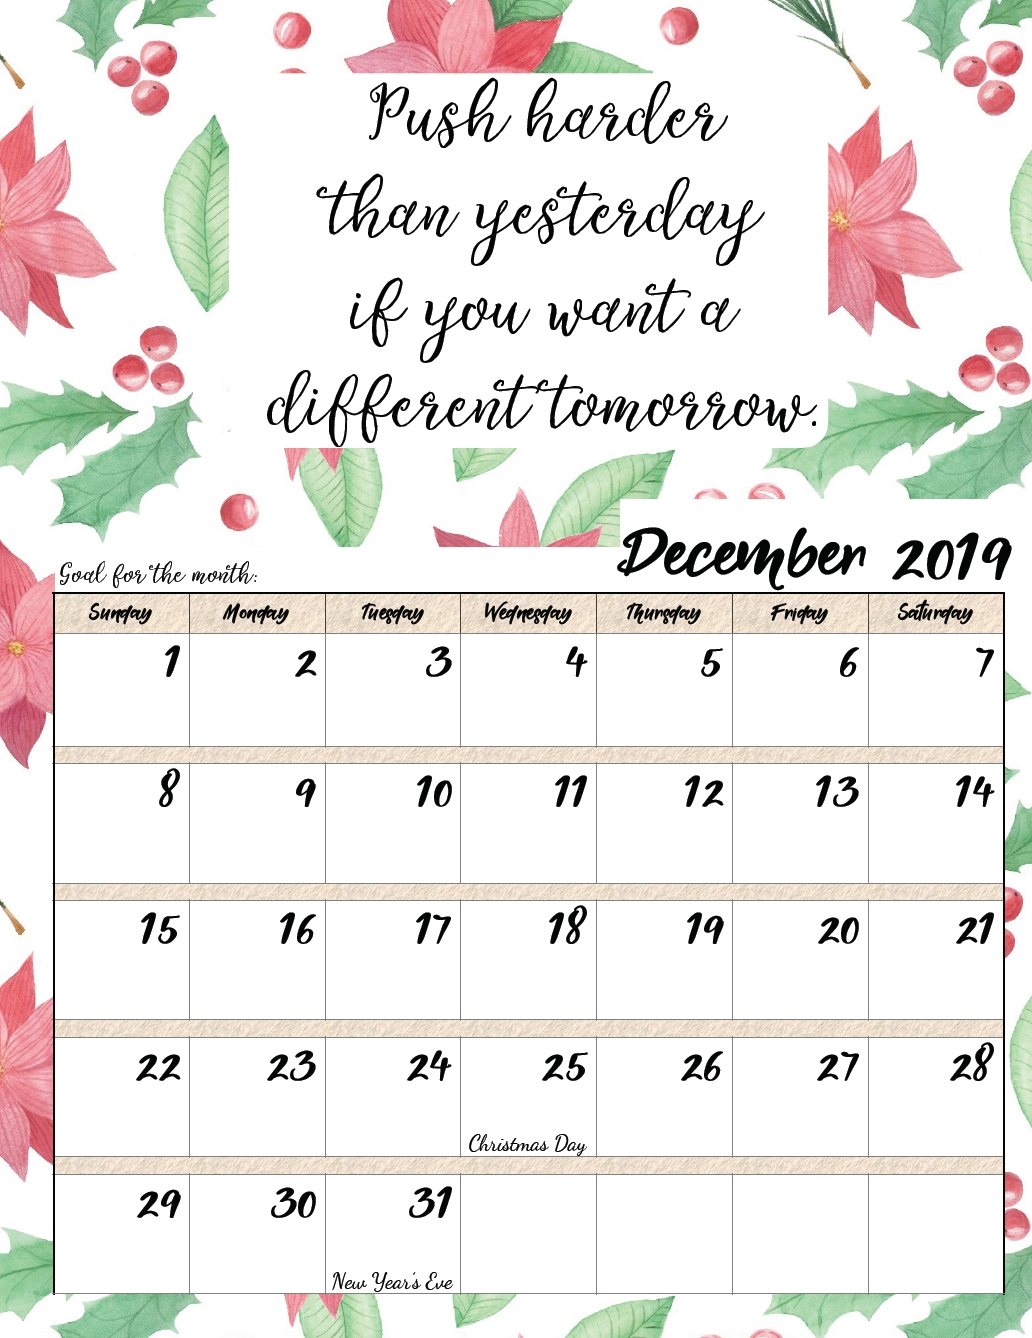 Free Printable 2019 Monthly Motivational Calendars | Free regarding Free Printable 2020 Canadian Calendar Motivational